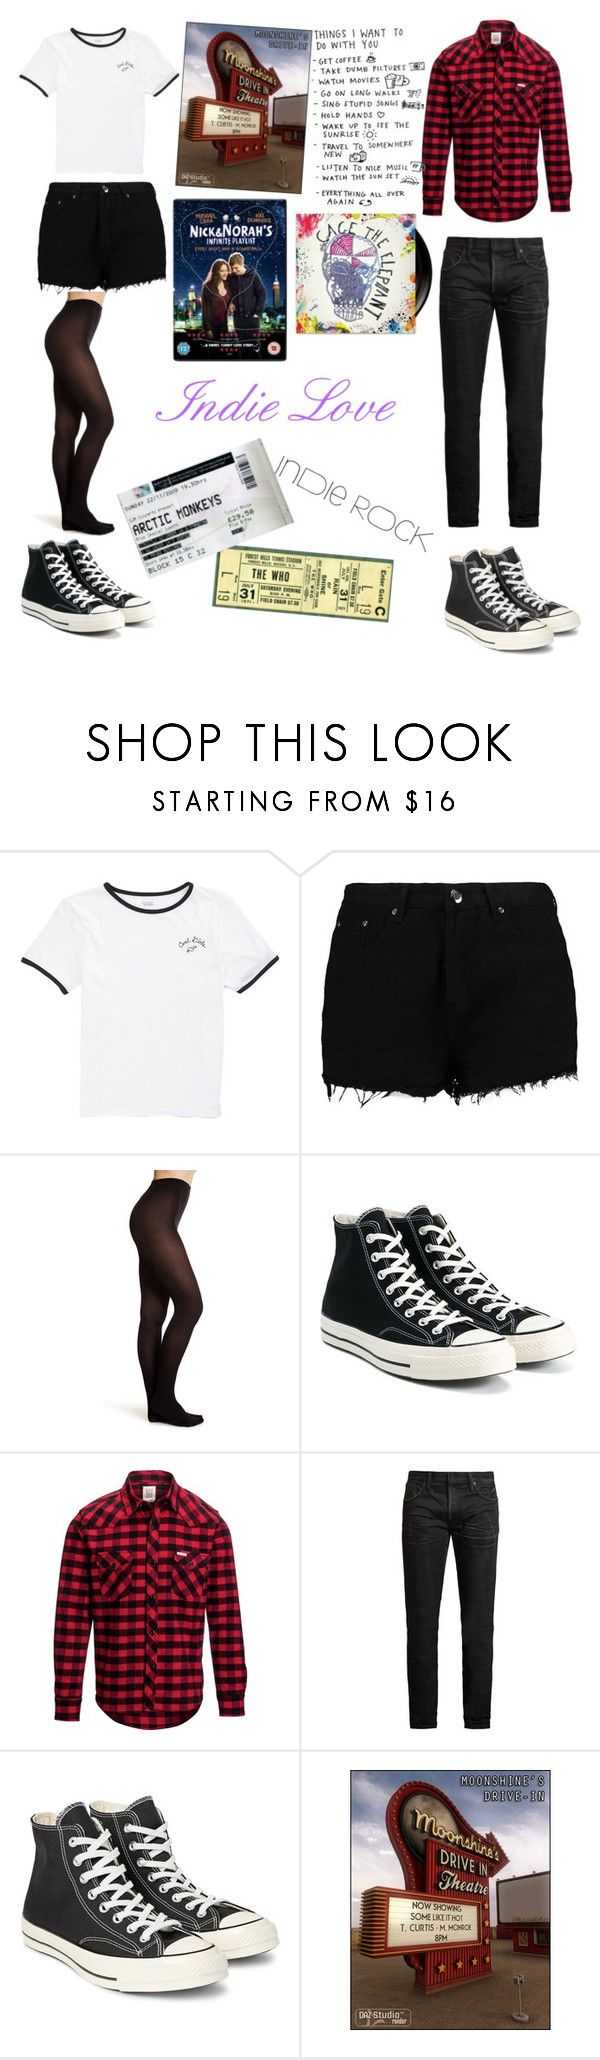 """""""Our Indie Love ⛅"""" by sweetheart-the-moonbear ❤ liked on Polyvore featuring Vans, Boohoo, Topshop, Converse, Topo Designs, MasterCraft Union and INDIE HAIR"""